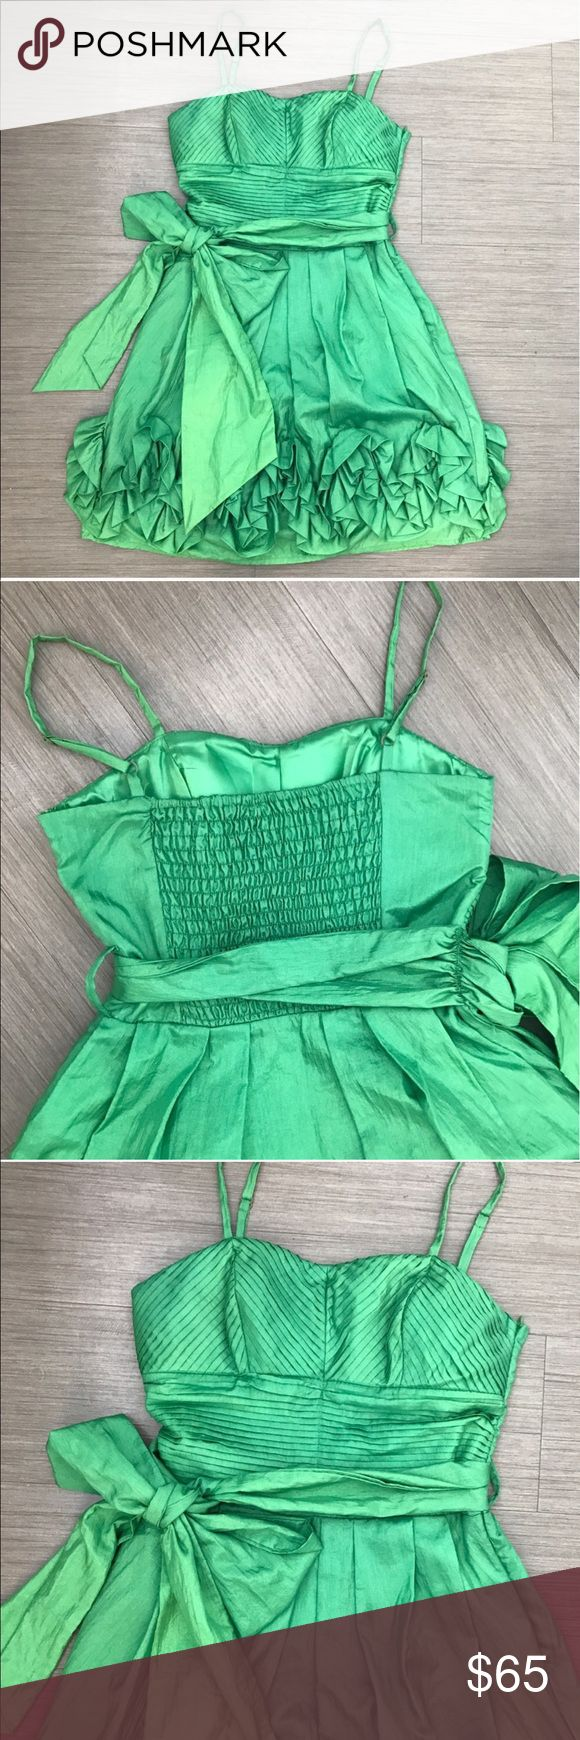 """GREEN RUFFLE DRESS WITH BIG BOW BEAUTIFUL GREEN RUFFLE DRESS. Color: different tones of green. Brand si style for Asos. Used once for a wedding. Its a size small, stretches in the back. Bust measurements is 32"""" -36"""" but stretches in the back and can fit up to size 36"""". Ask all questions before buying.                                                                    💗Condition: EUC, No flaws, no rips, holes or stains 💗Smoke free home 💗No trades/No returns 💗No modeling 💗Shipping next…"""